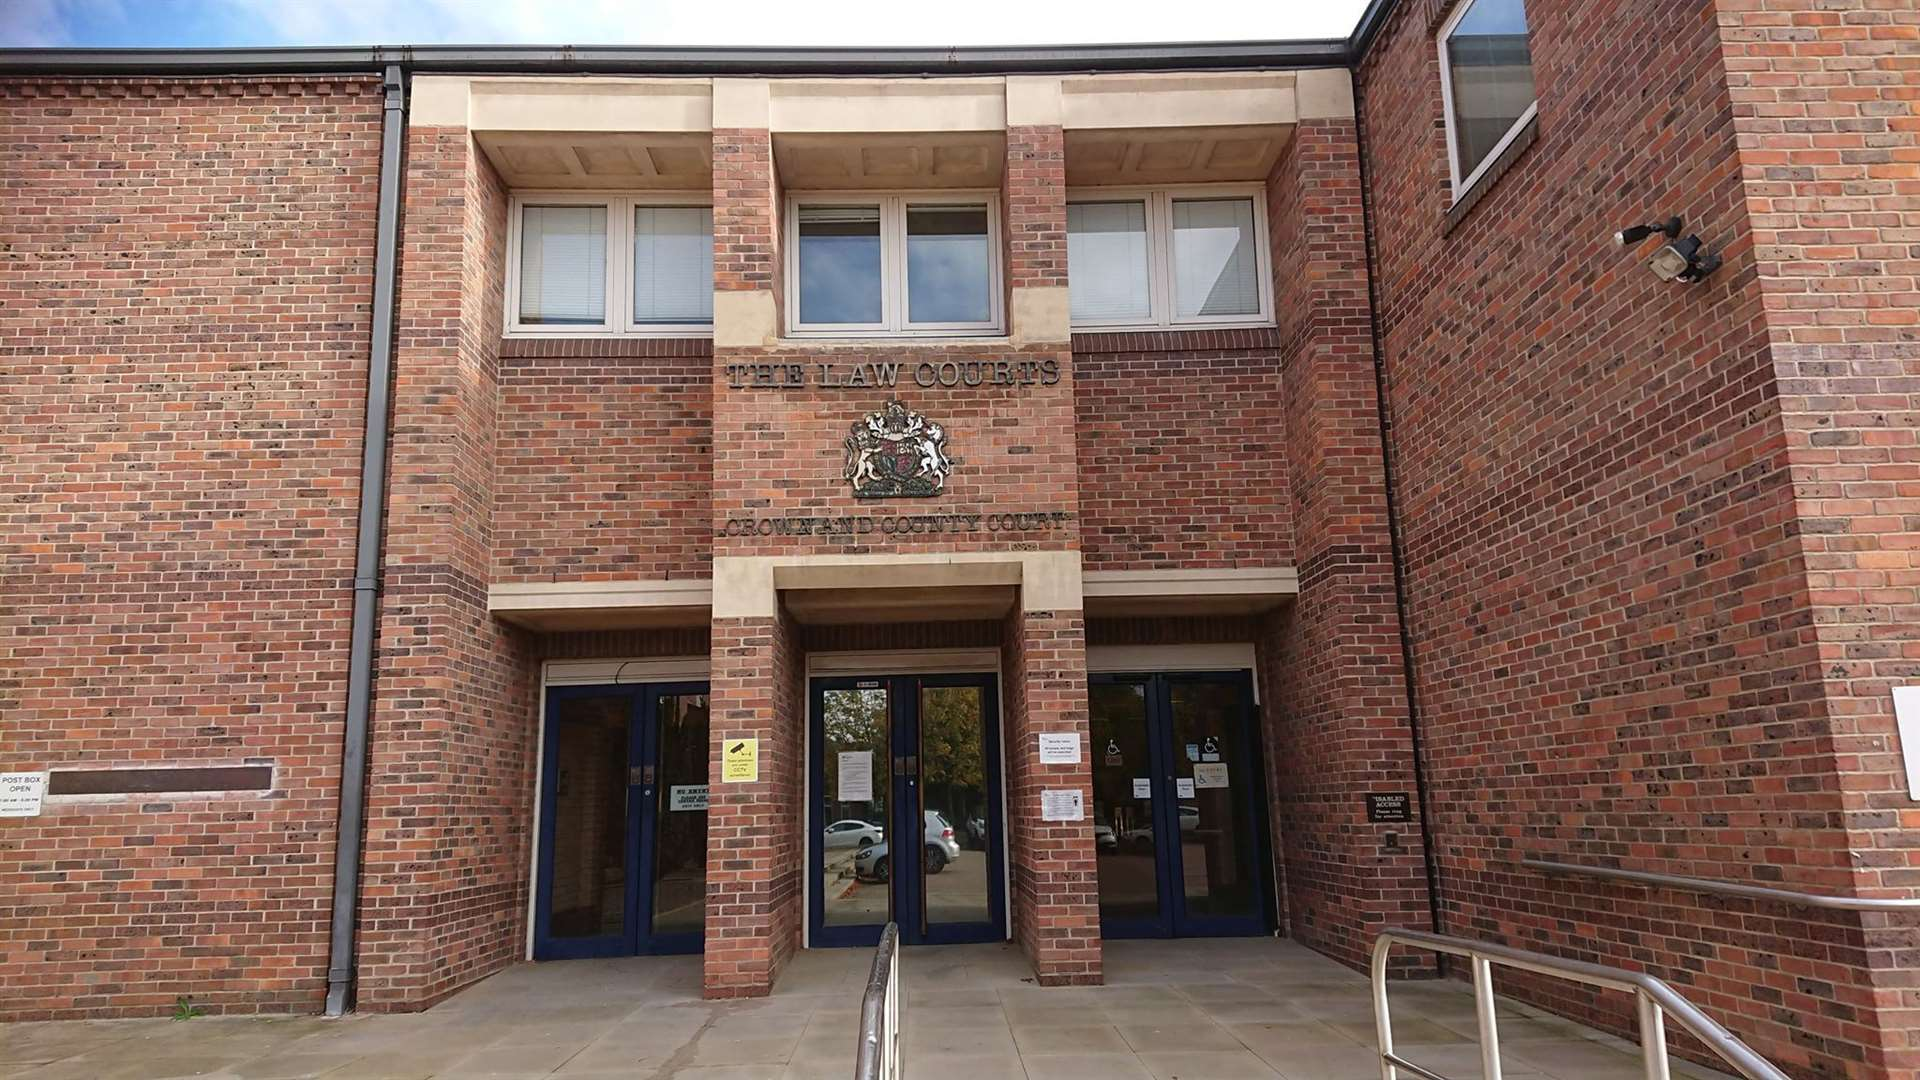 Jordan Chenery is due to appear at Norwich Crown Court on April 1.